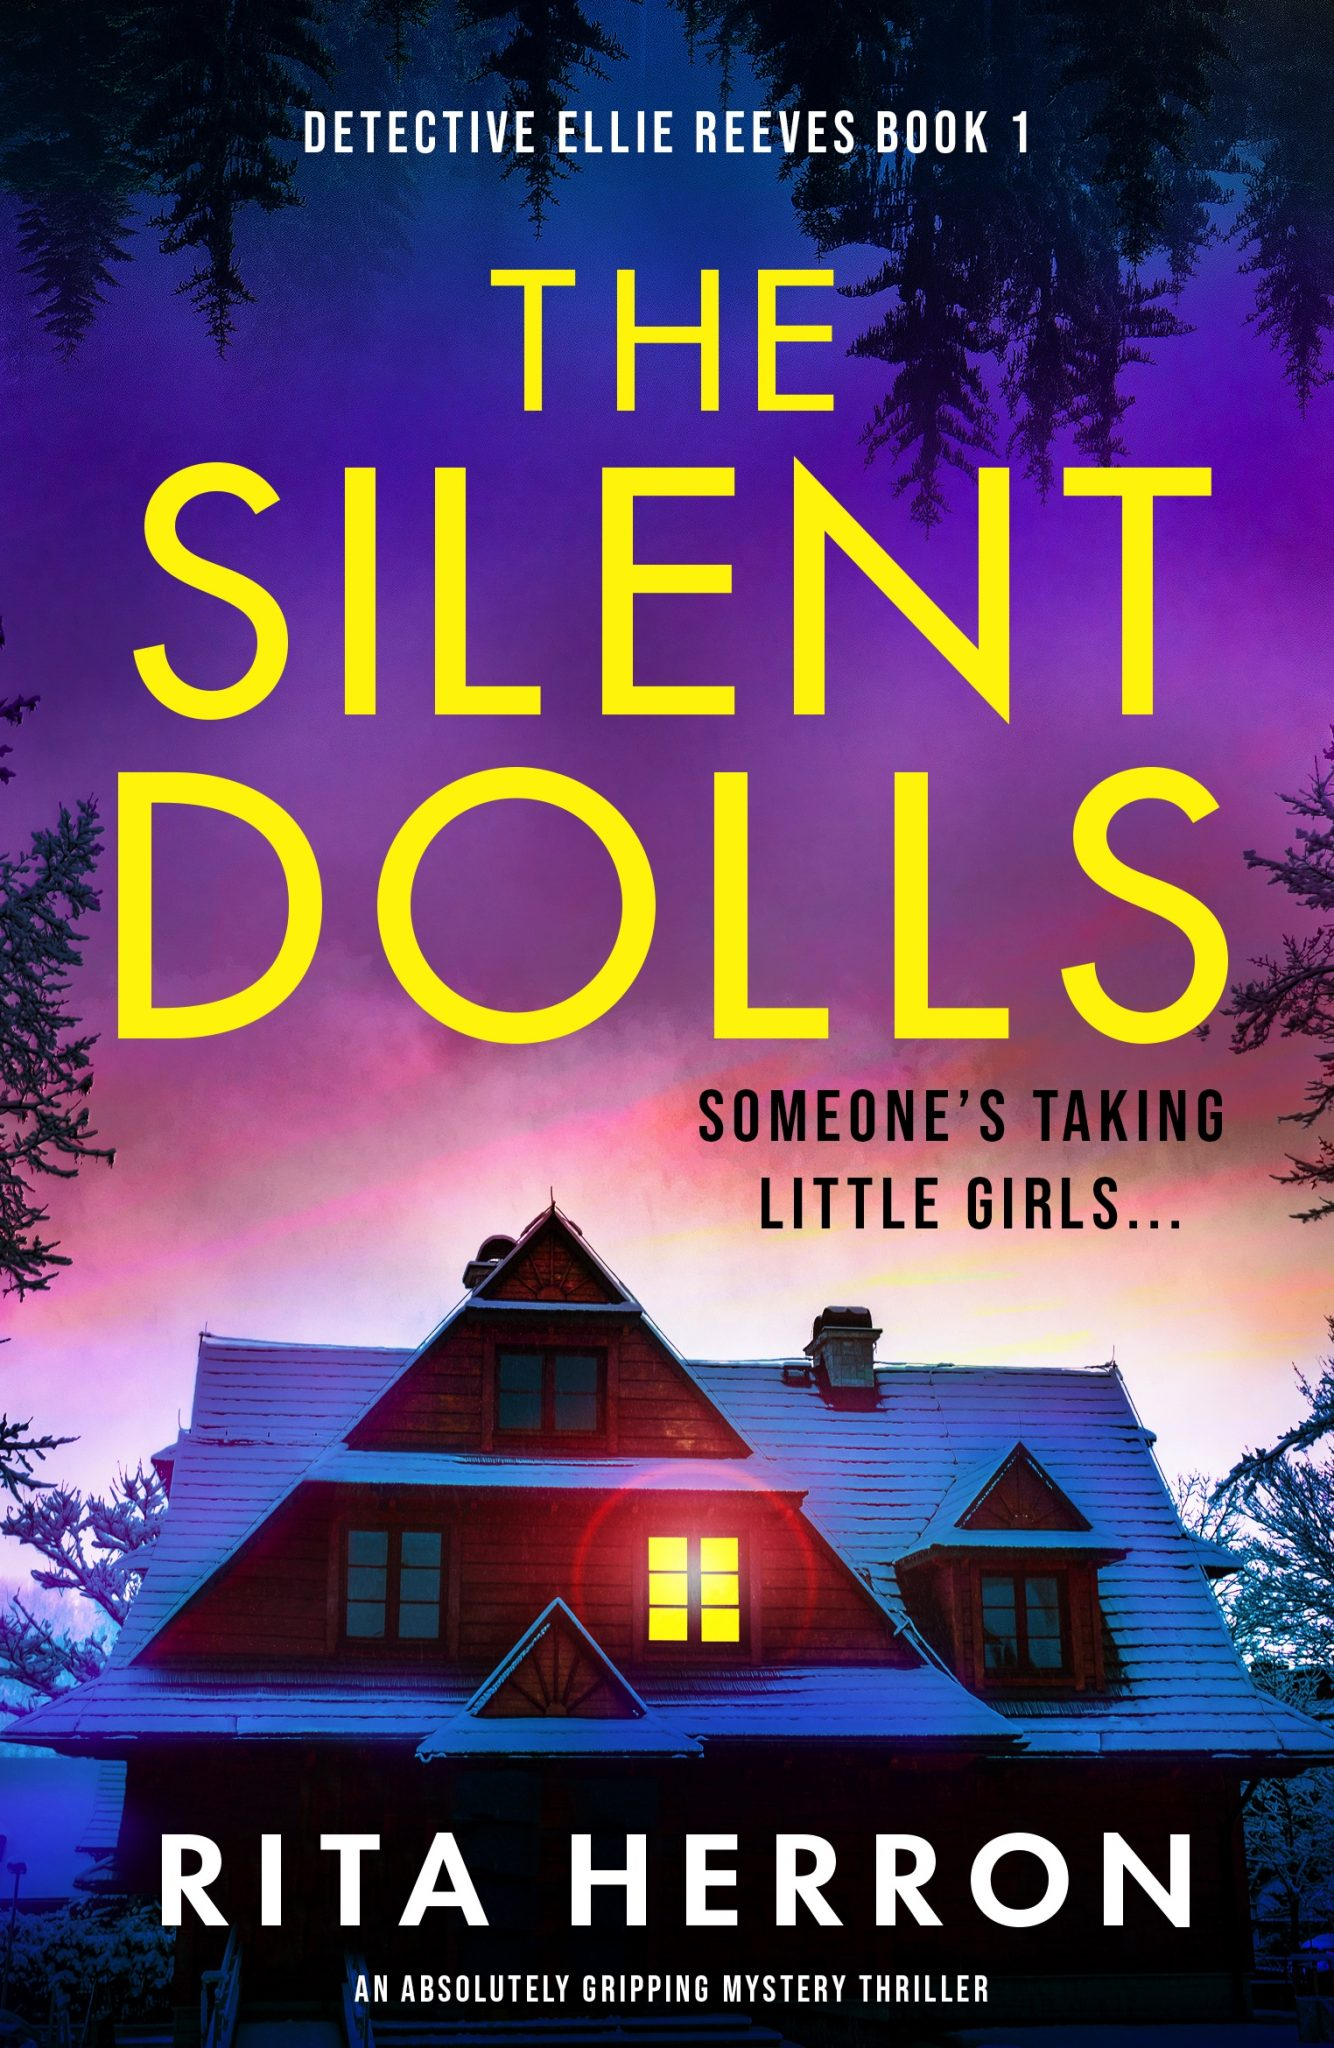 The Silent Dolls by Rita Herron